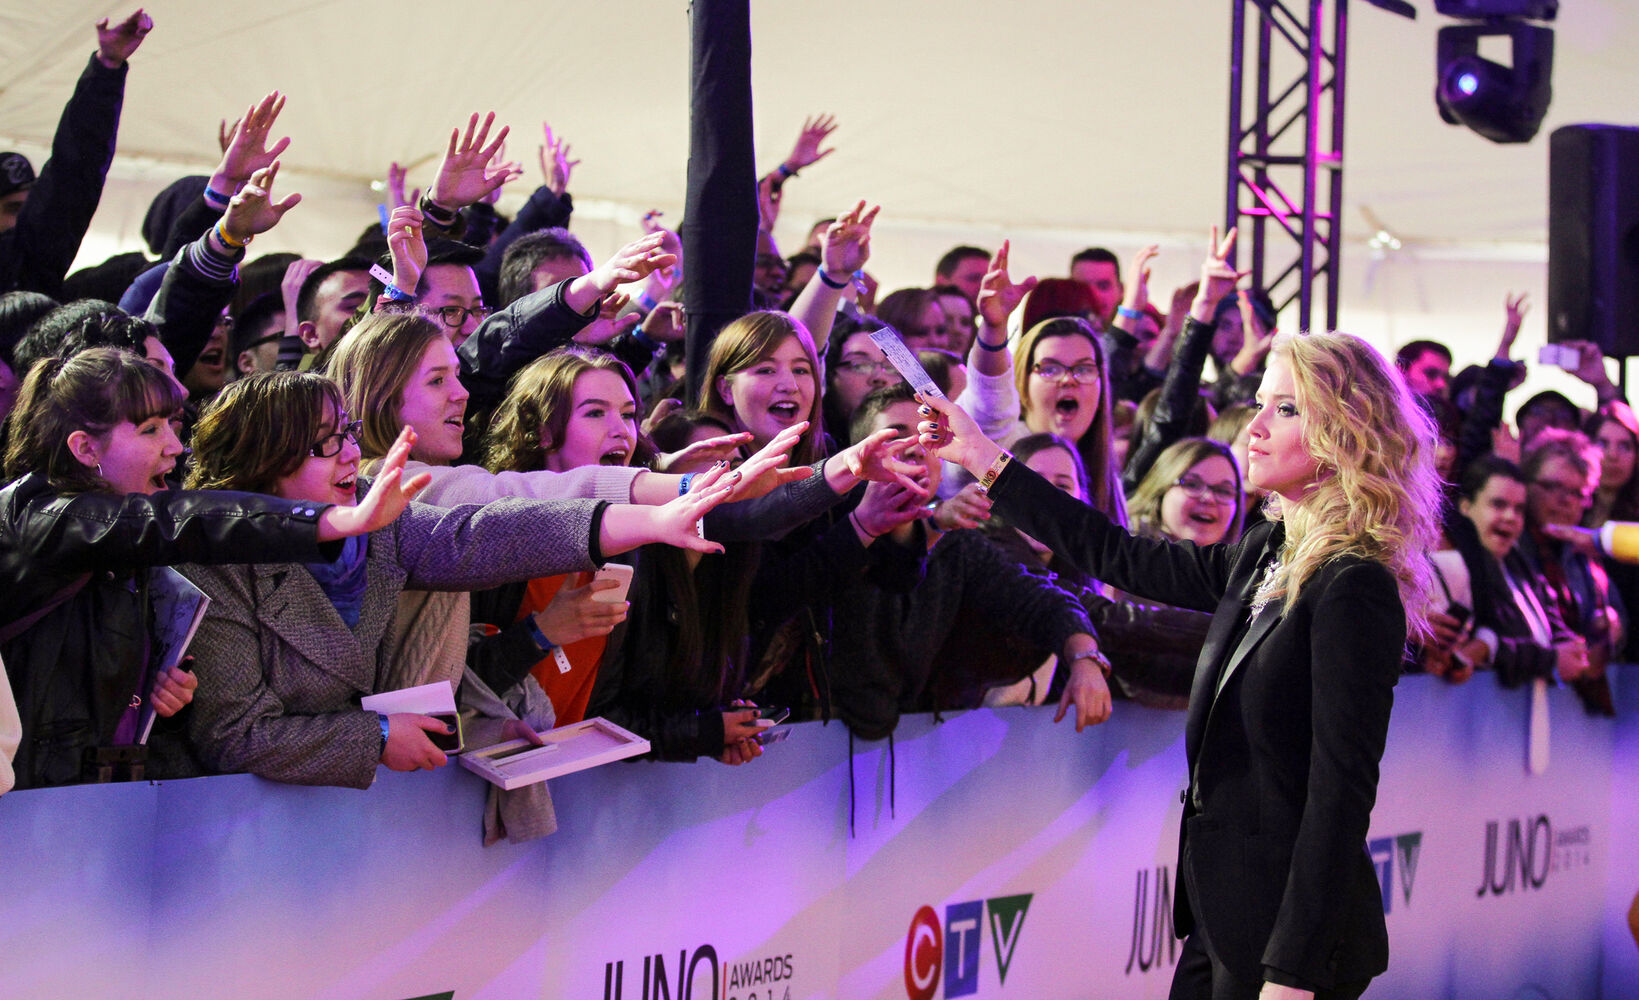 Fans at the Junos 2014 red carpet arrival. (Crystal Schick)